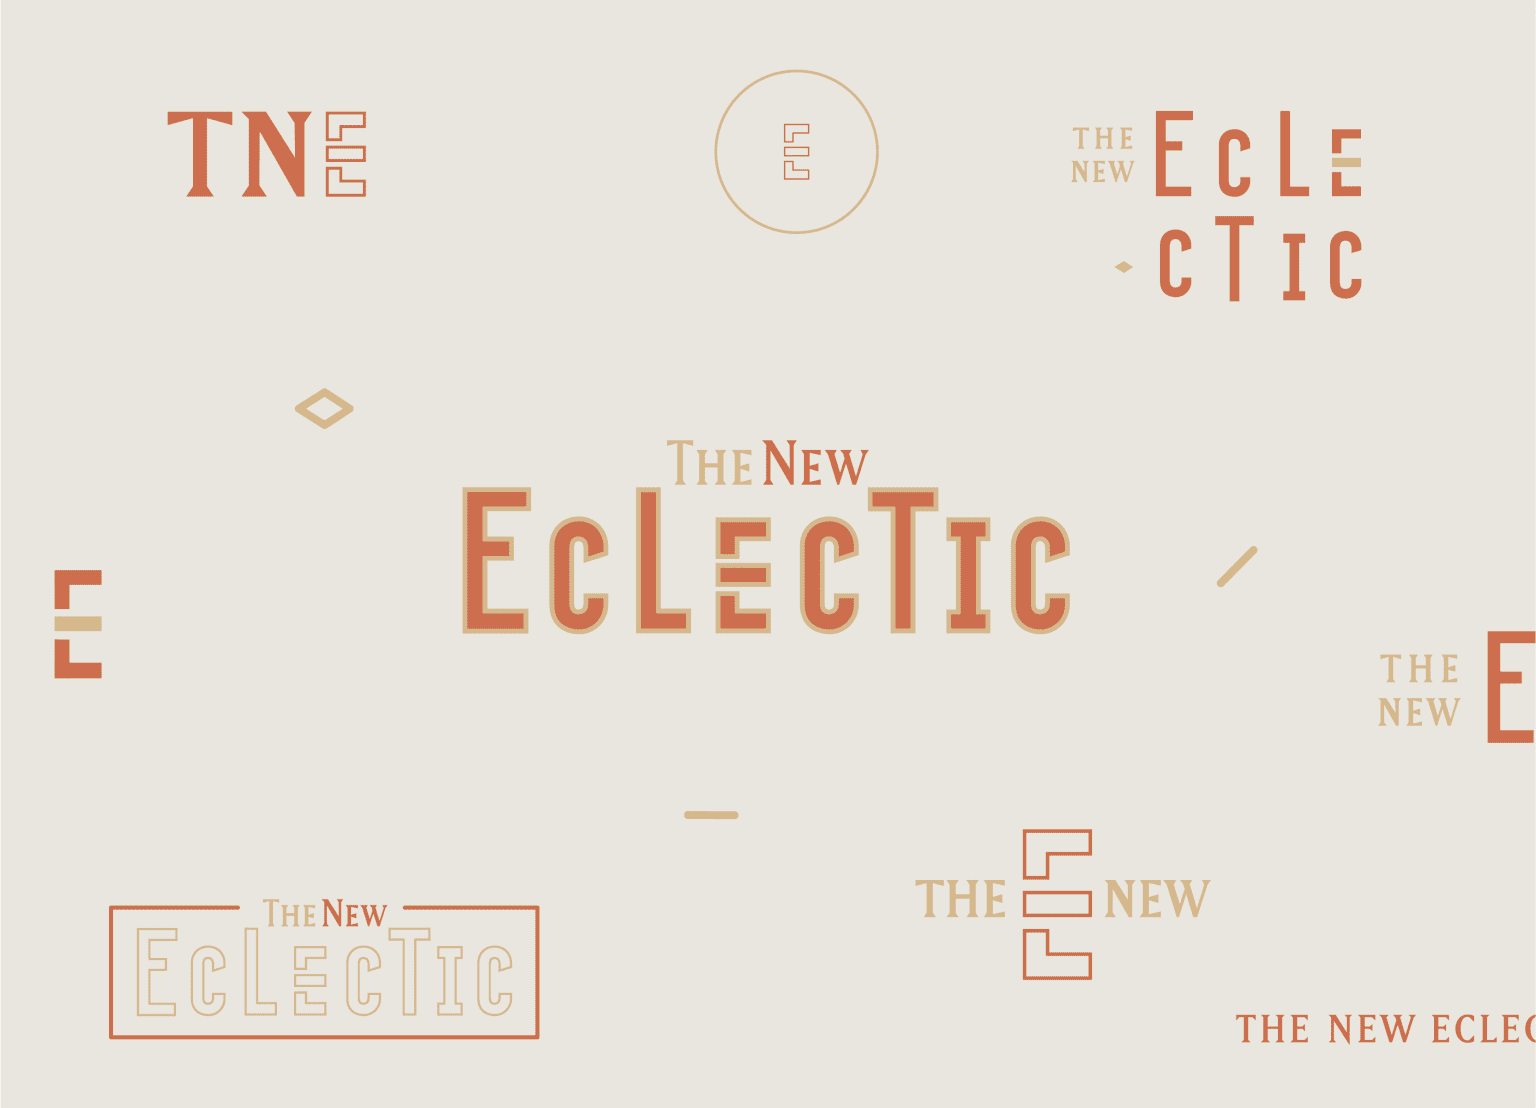 The New Eclectic Brand Identity